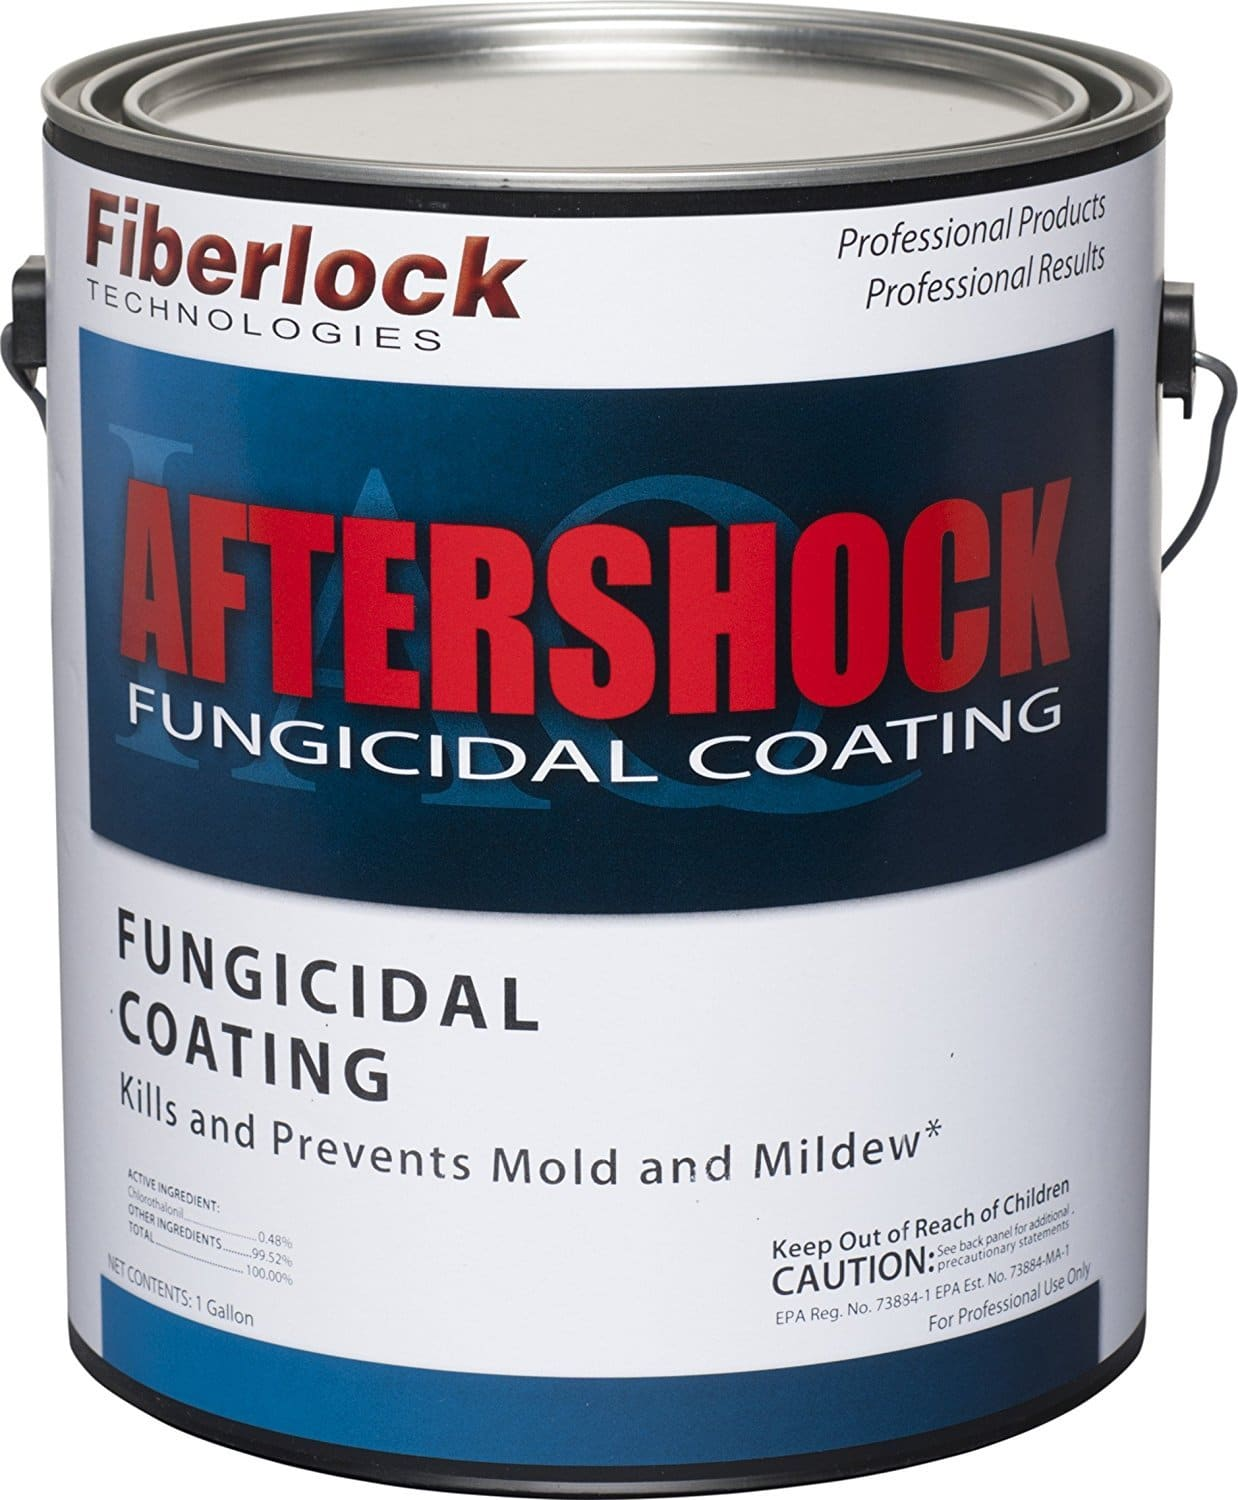 Fiberlock Aftershock